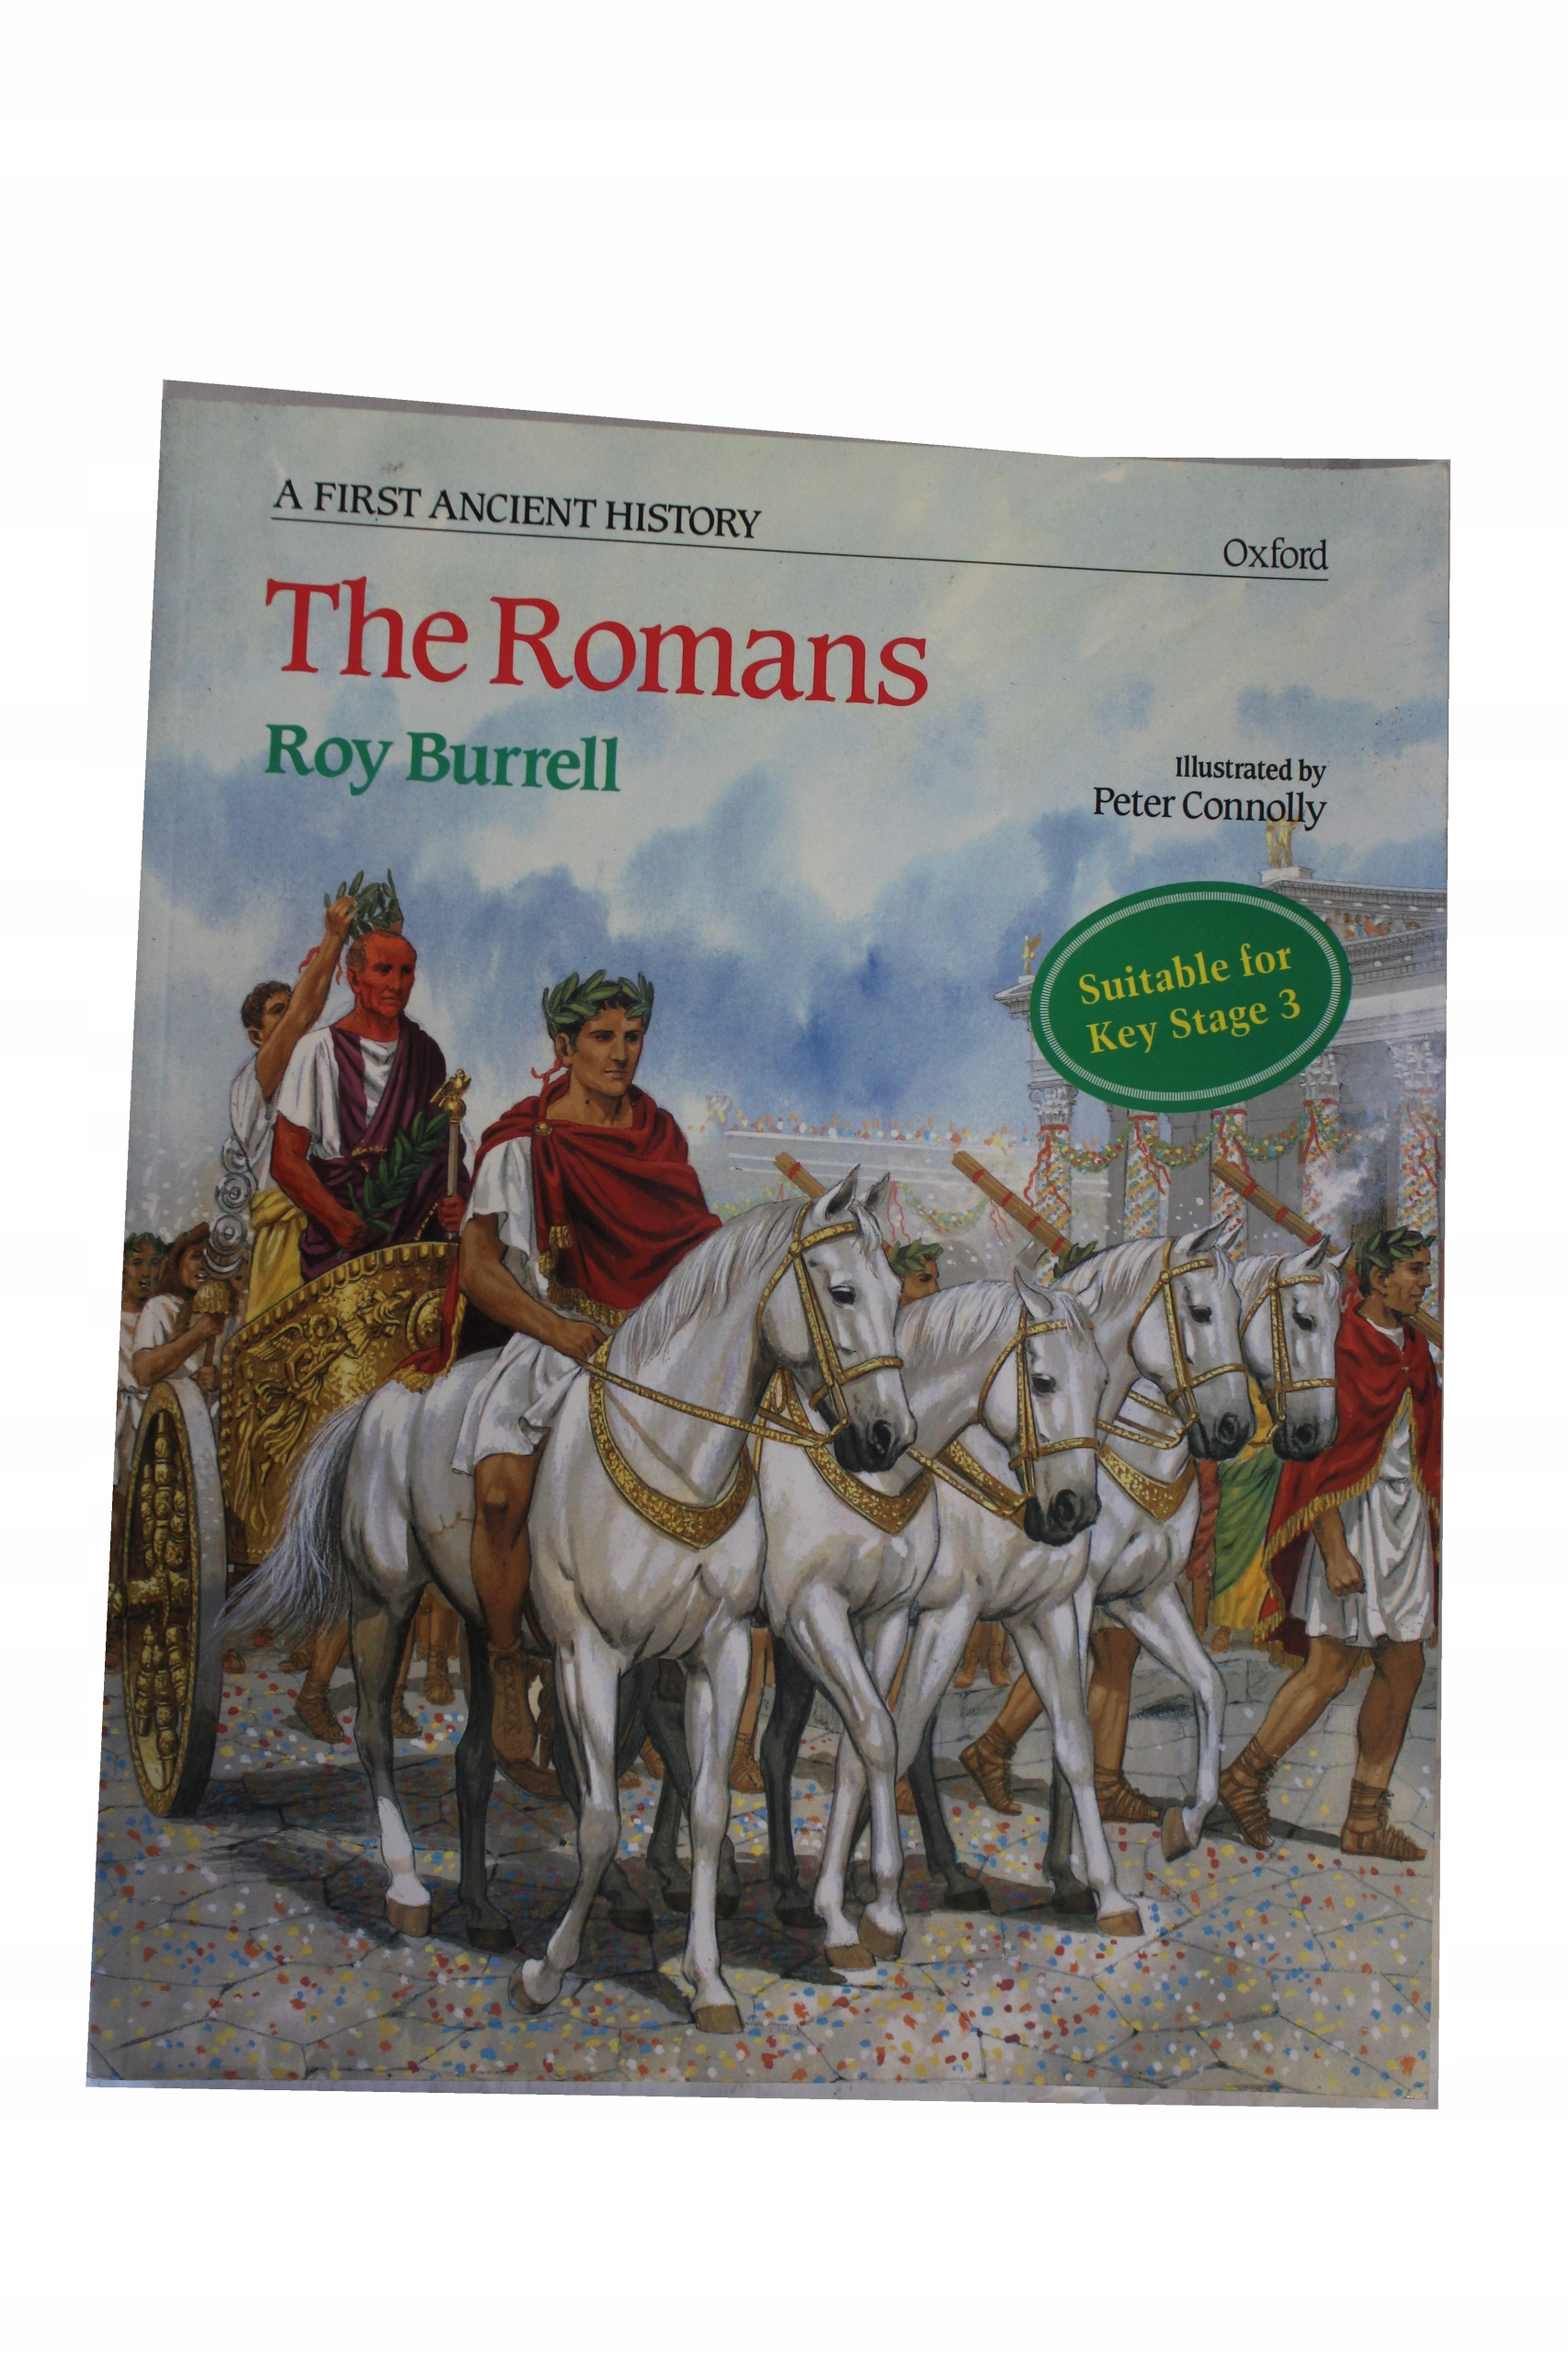 R.E.C. Burrell A First Ancient History: The Romans